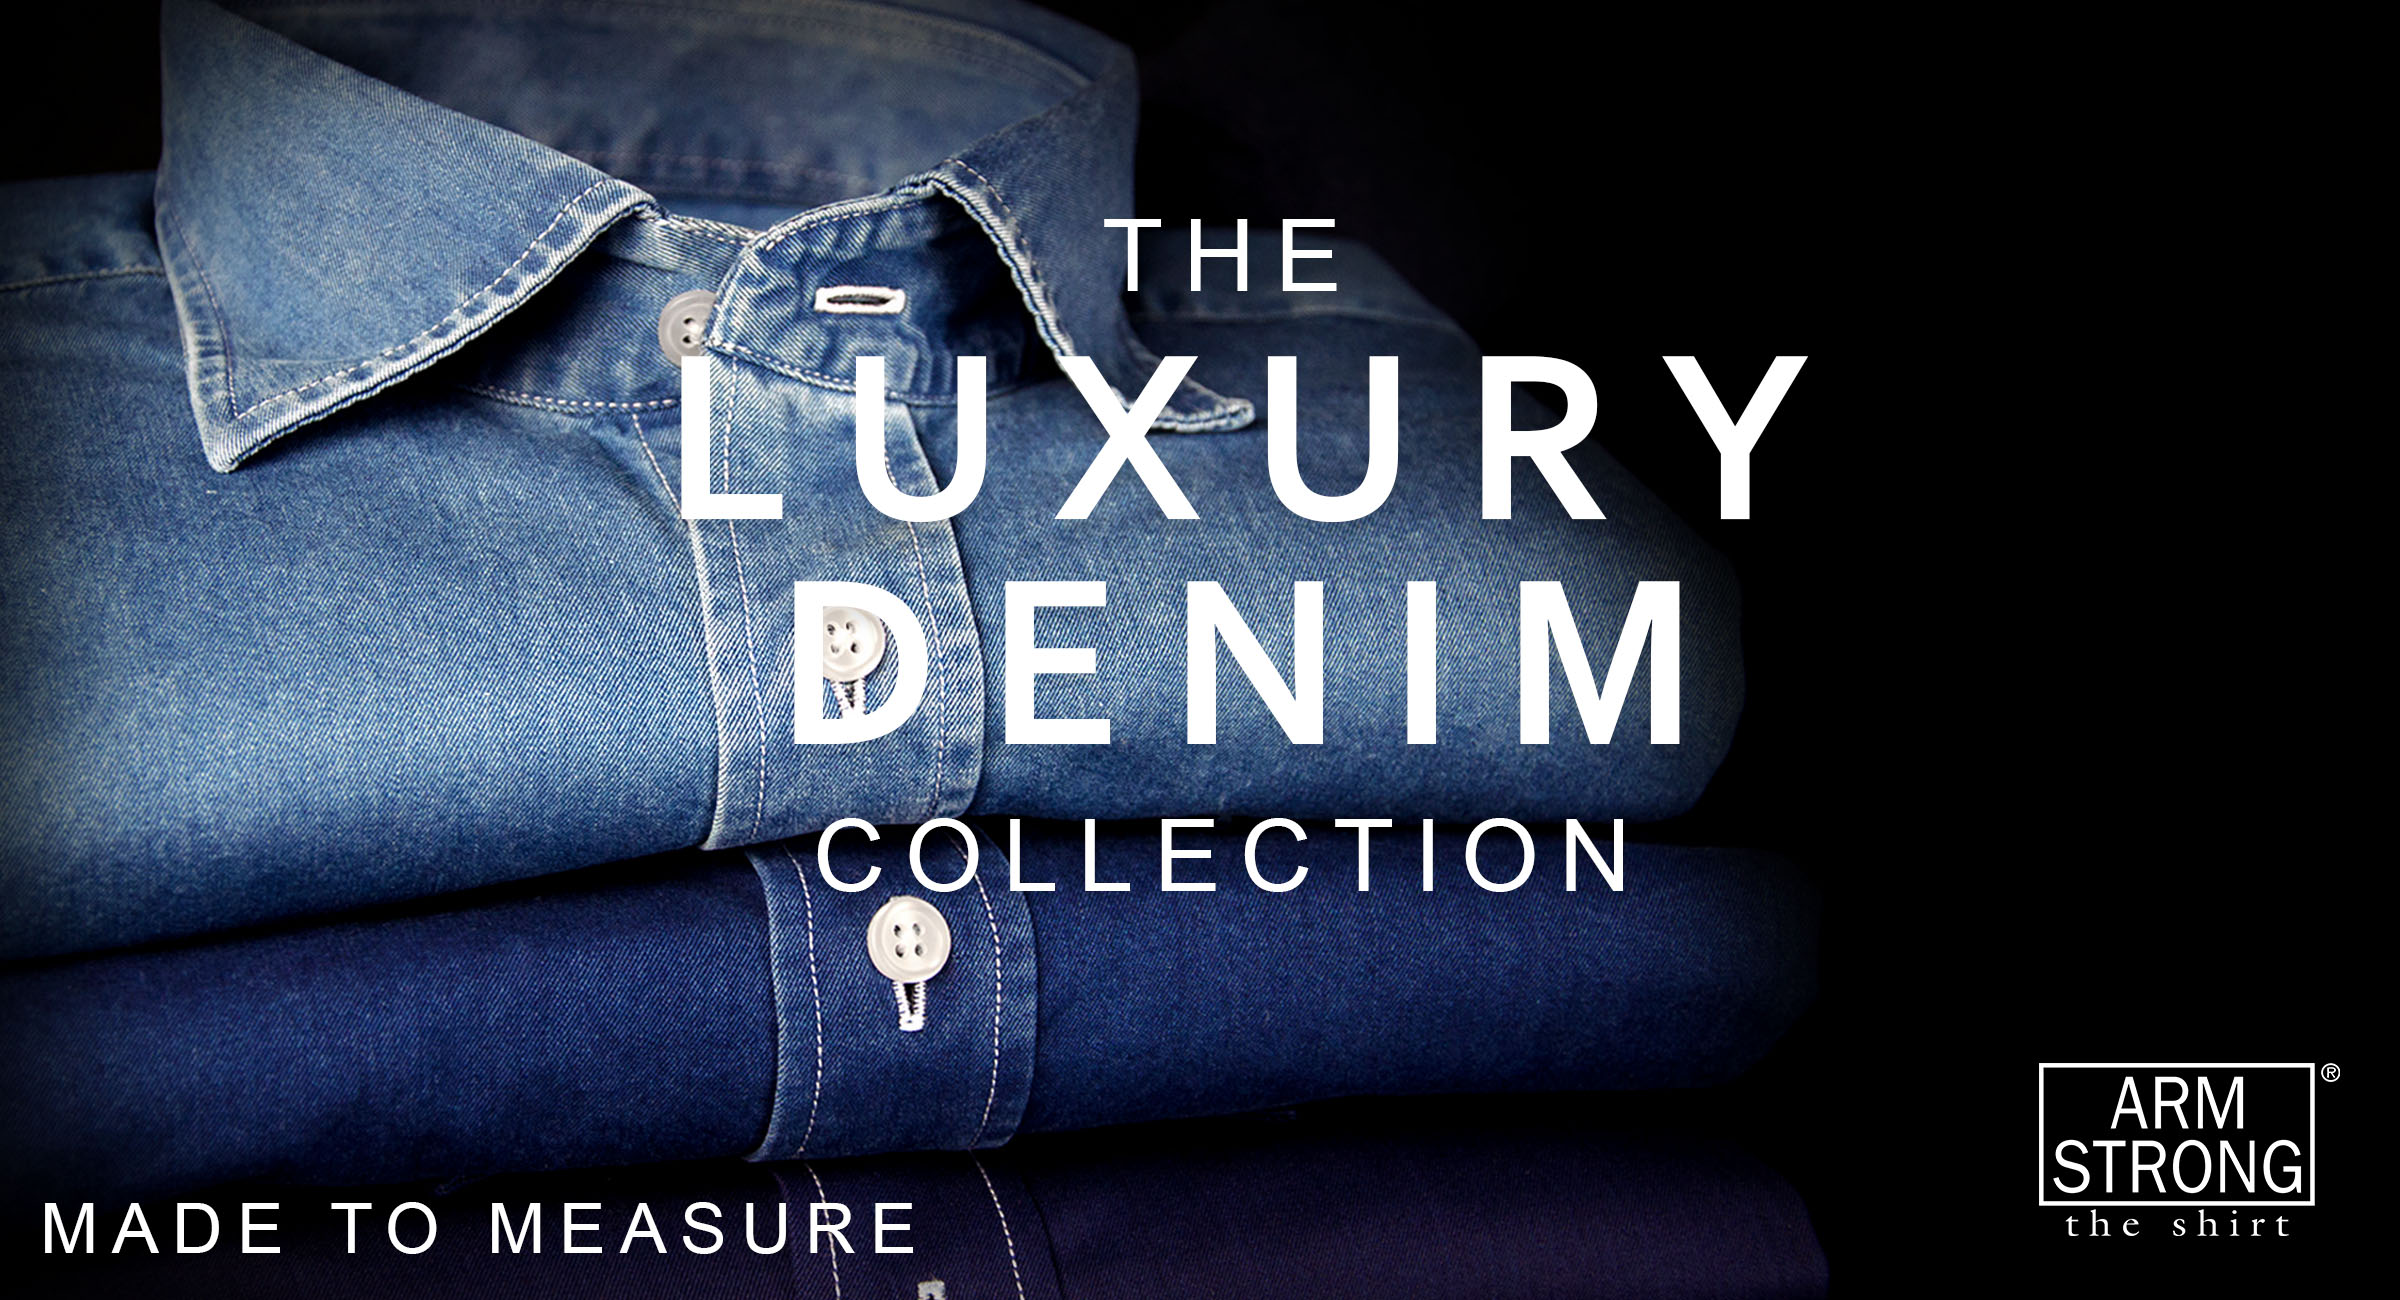 denim-made-to-measure